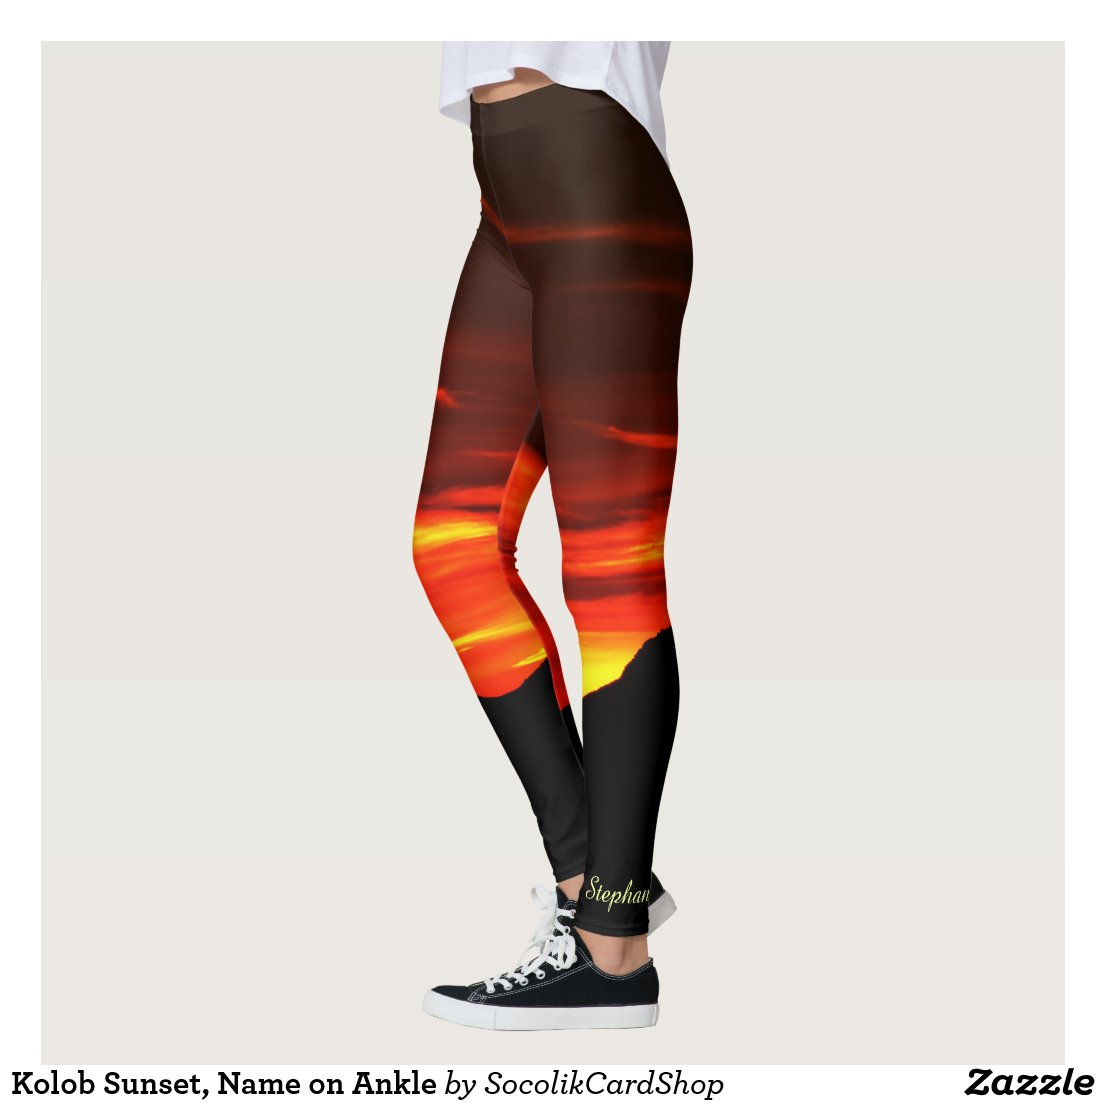 Kolob Sunset Leggings with Name on Ankle